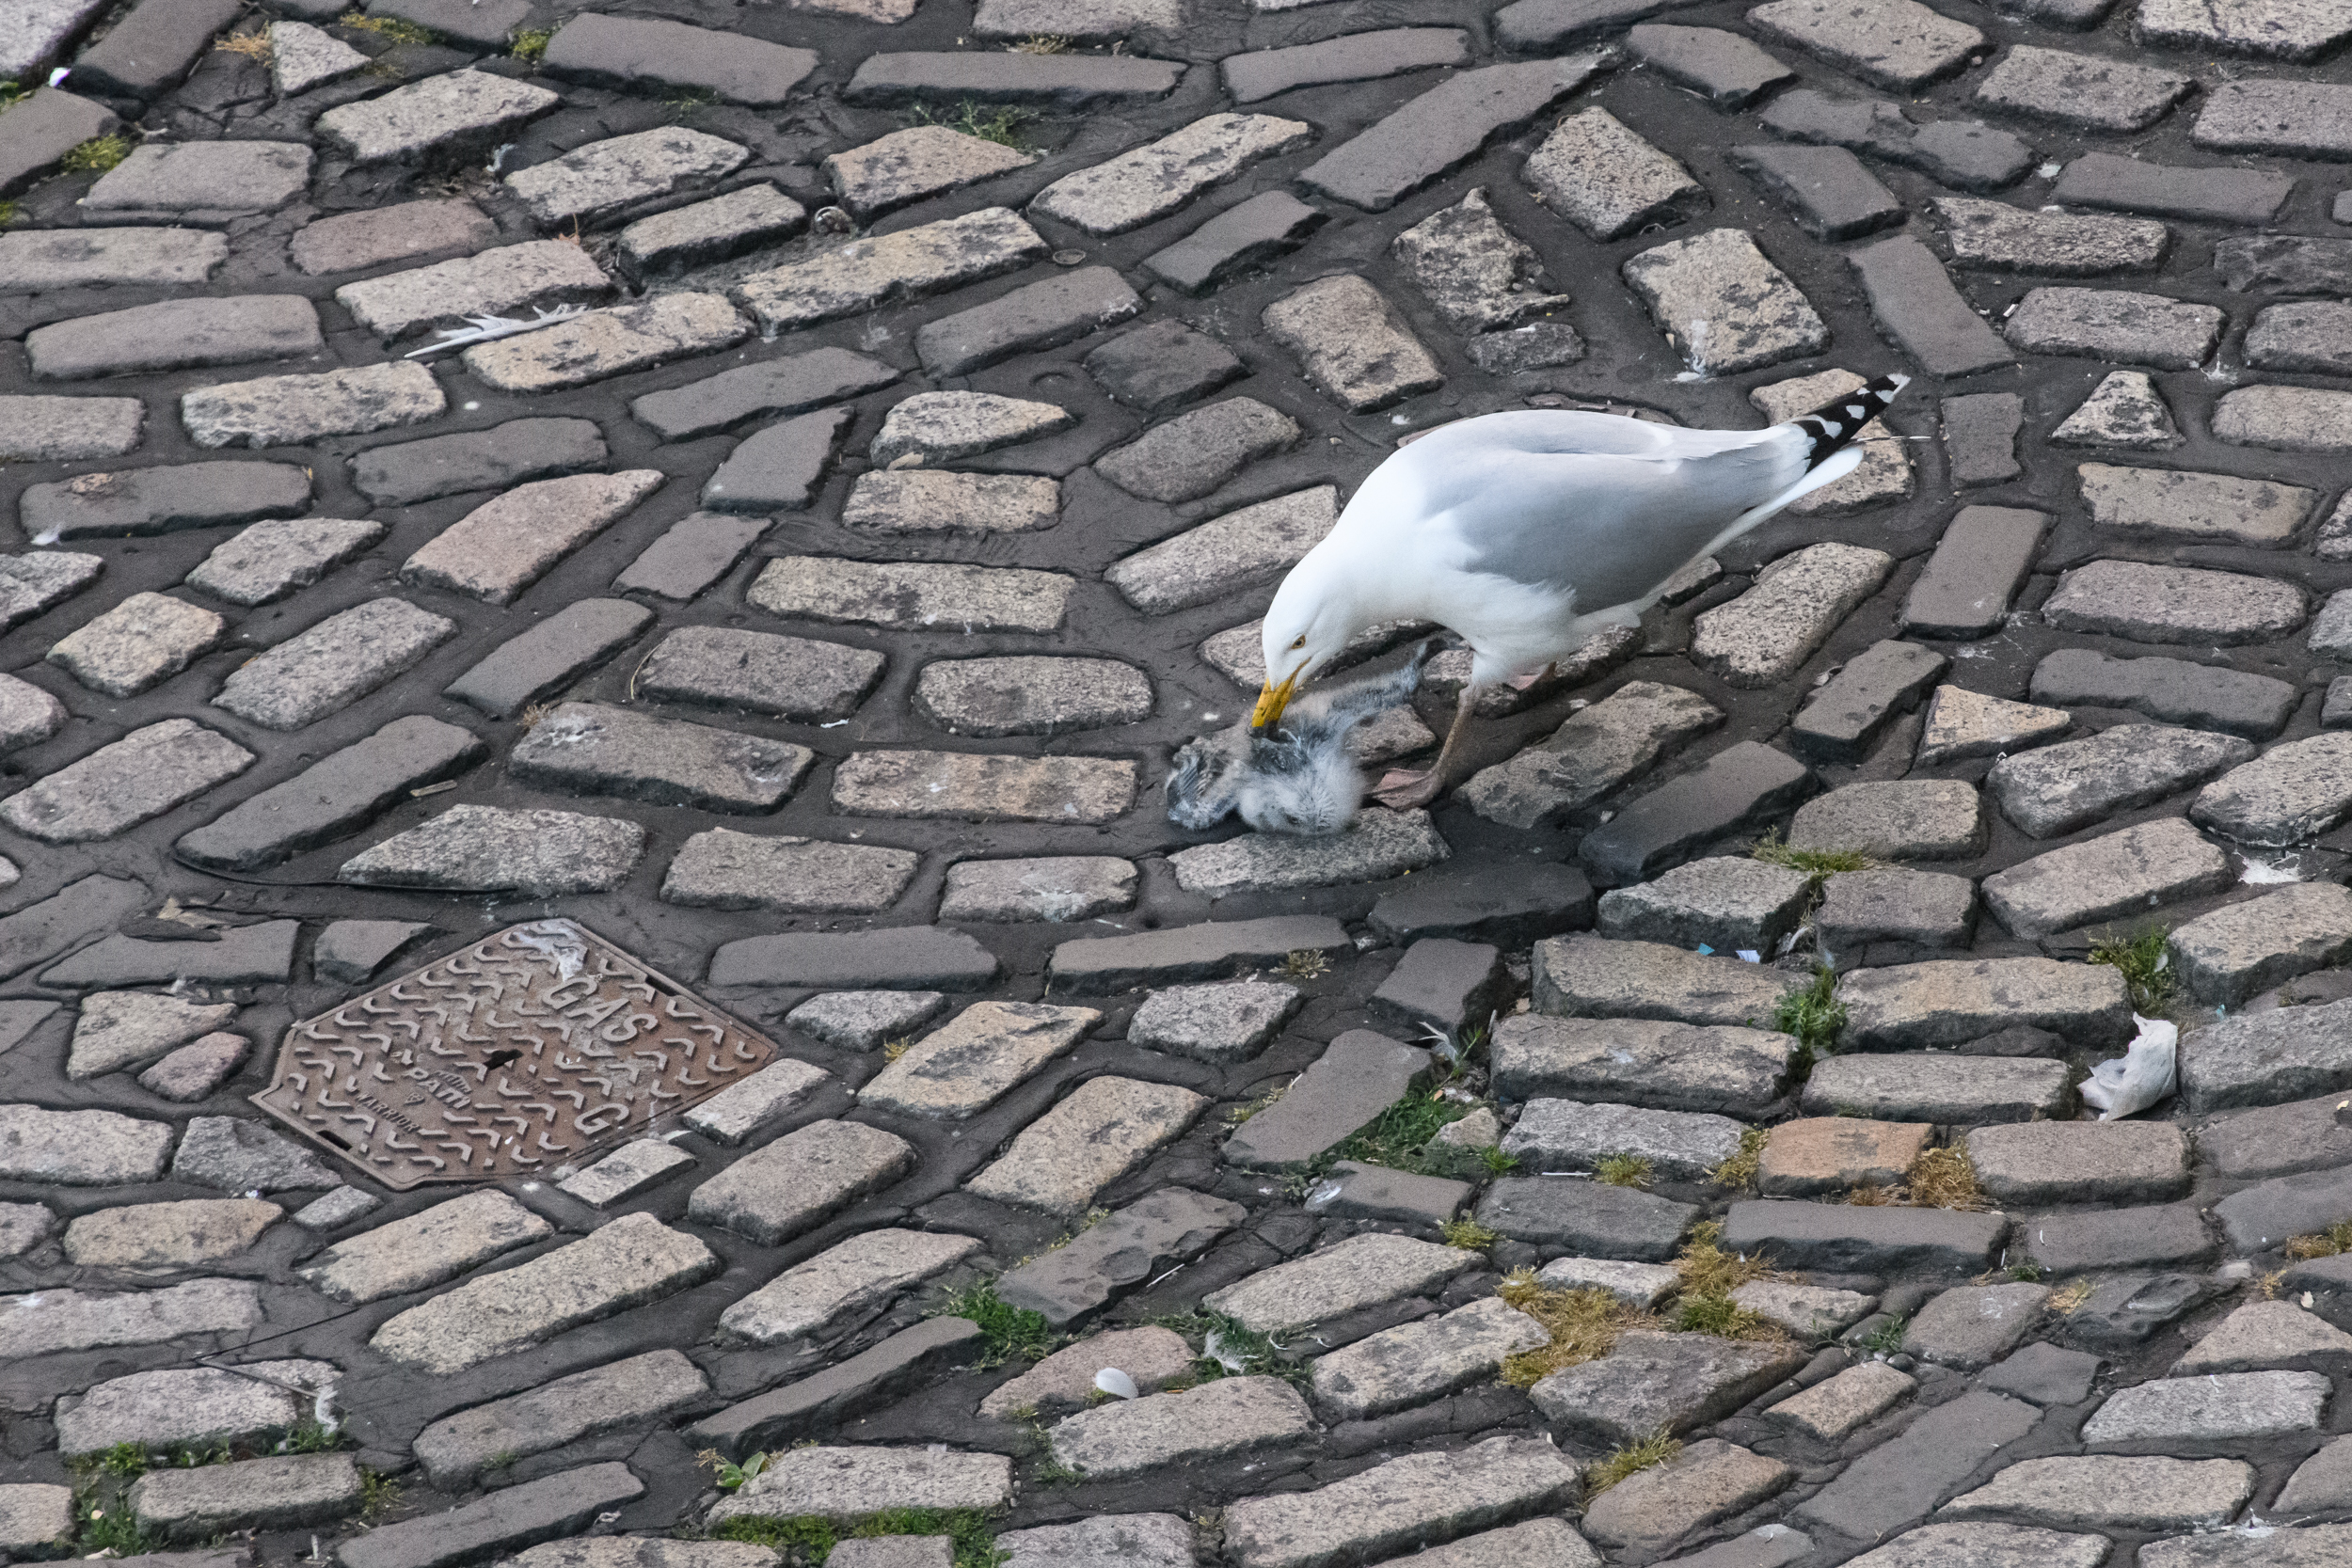 European herring gull (Larus argentatus) with dead kittiwake (Rissa tridactyla) chick on the road. Newcastle, UK. July